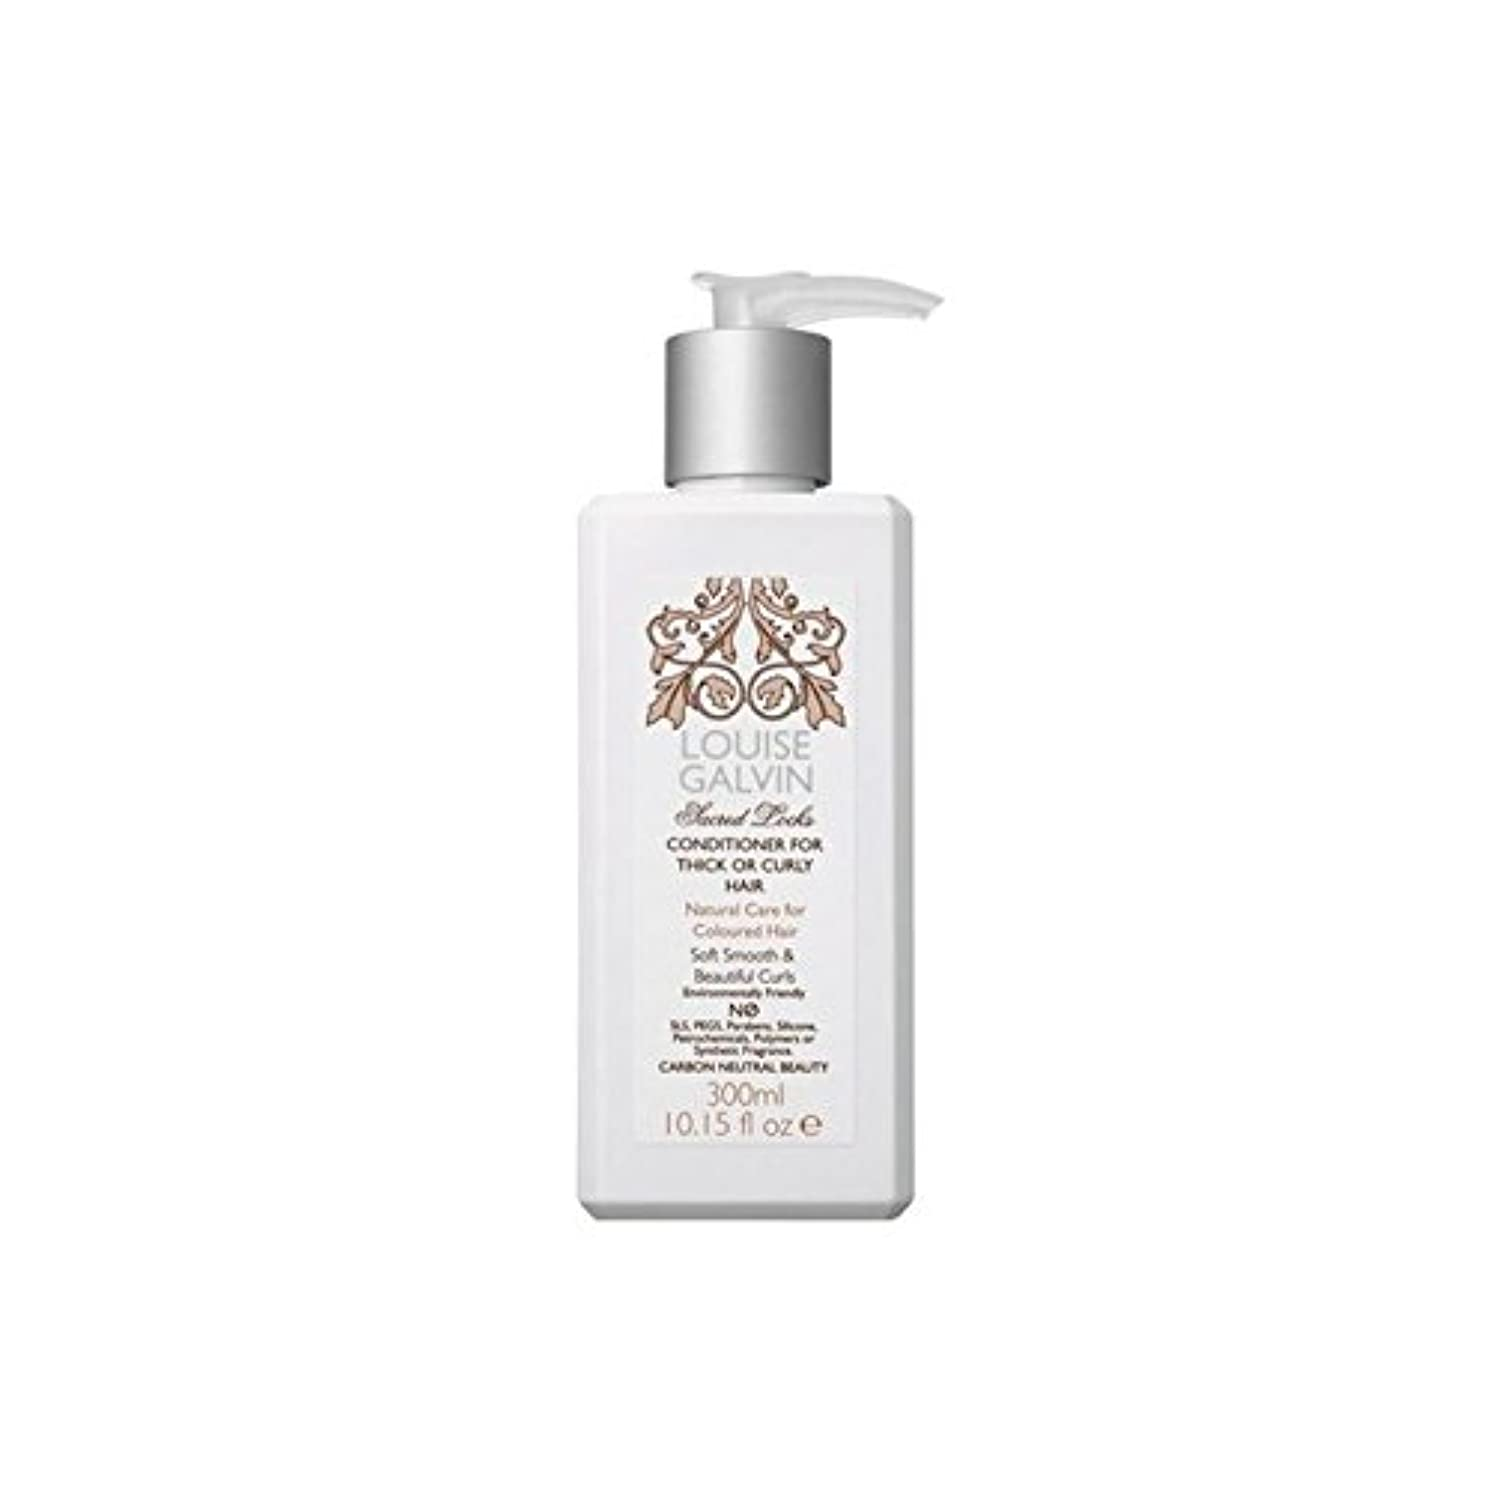 Louise Galvin Conditioner For Thick Or Curly Hair 300ml (Pack of 6) - 太いまたは巻き毛300ミリリットルのためのルイーズガルビンコンディショナー x6...